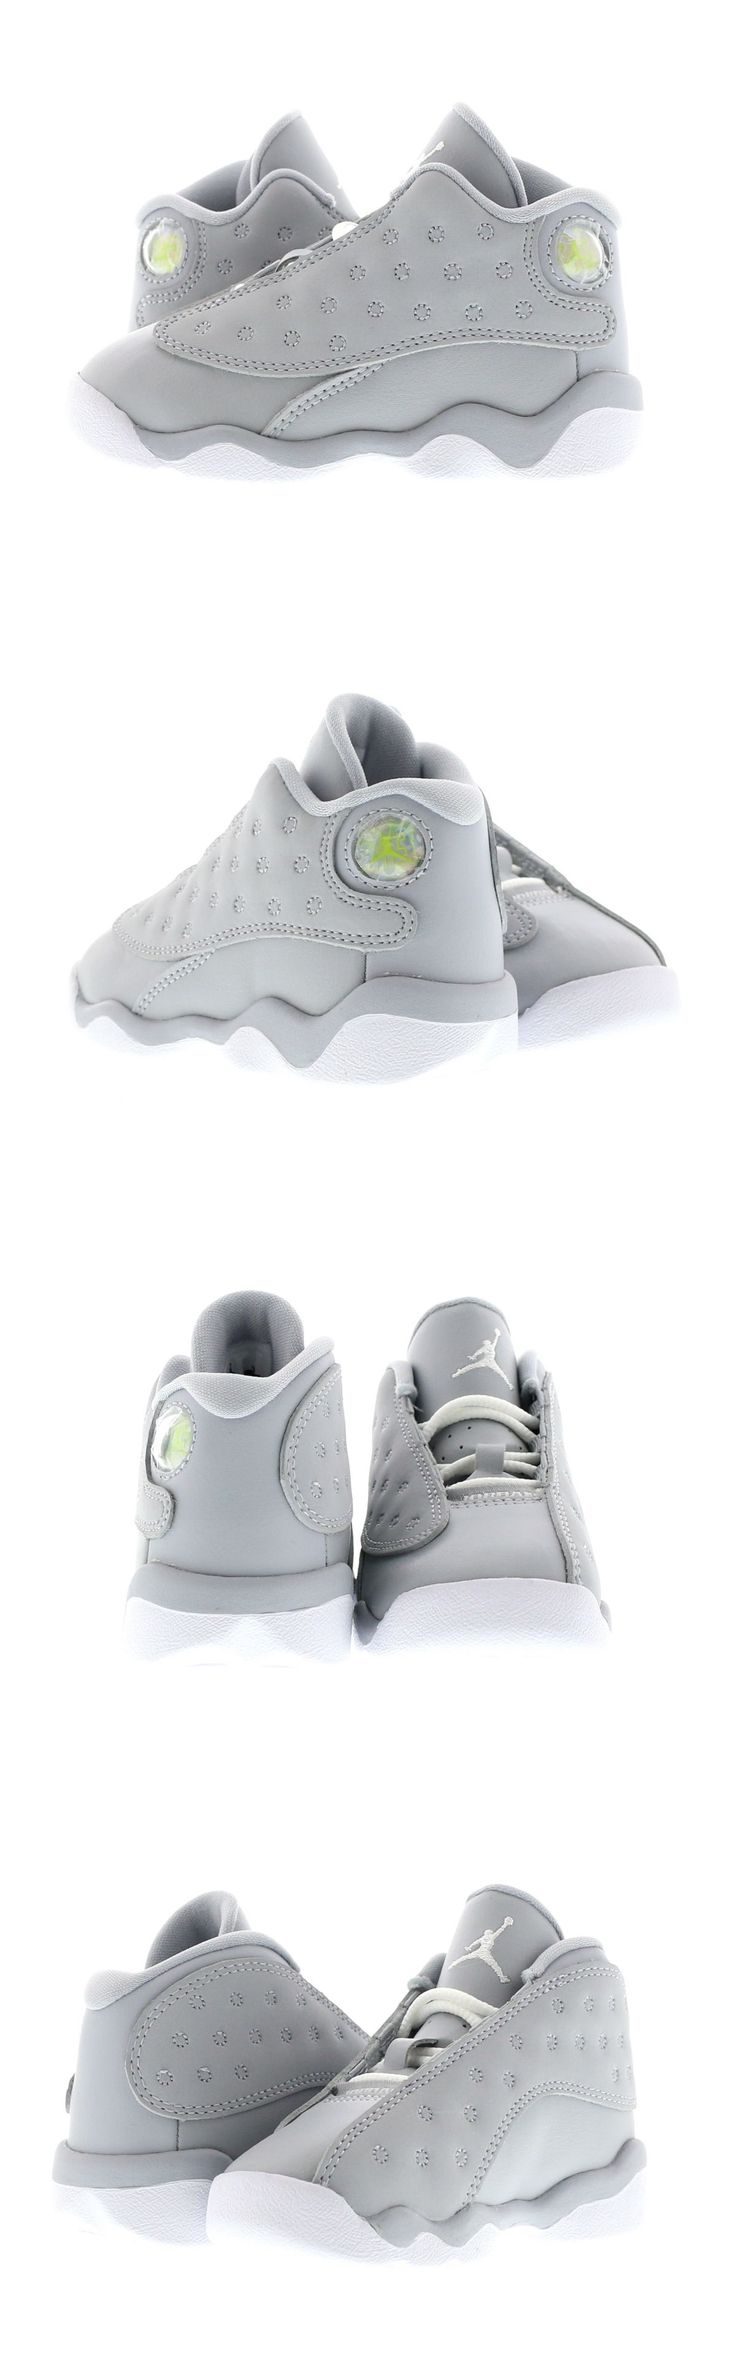 Baby Shoes 147285: Infant (Td) Air Jordan 13 Retro Wolf Grey White-Pink 684802-018 -> BUY IT NOW ONLY: $50 on eBay!